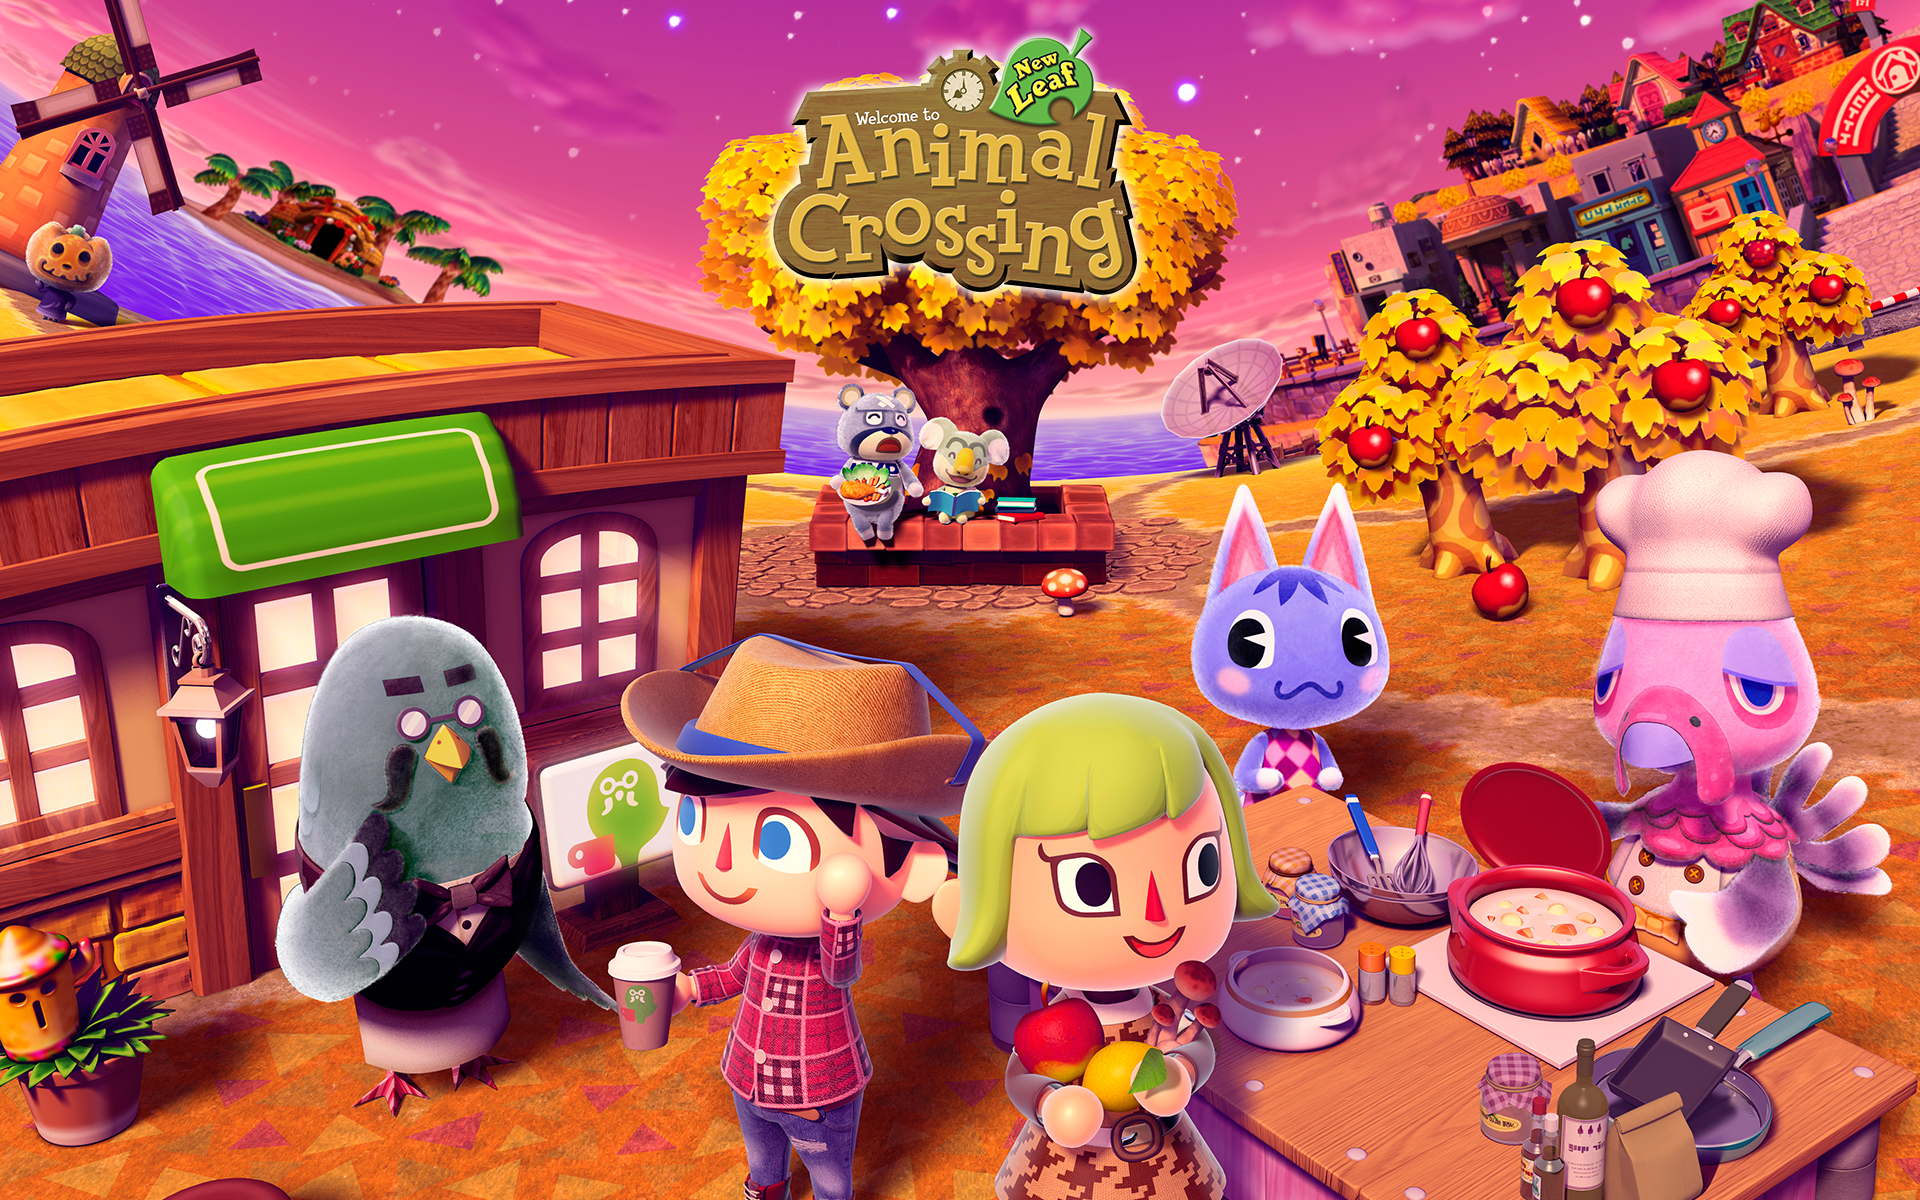 image - animalcrossing wallpaper 1920x1200-c | wallpapers wiki